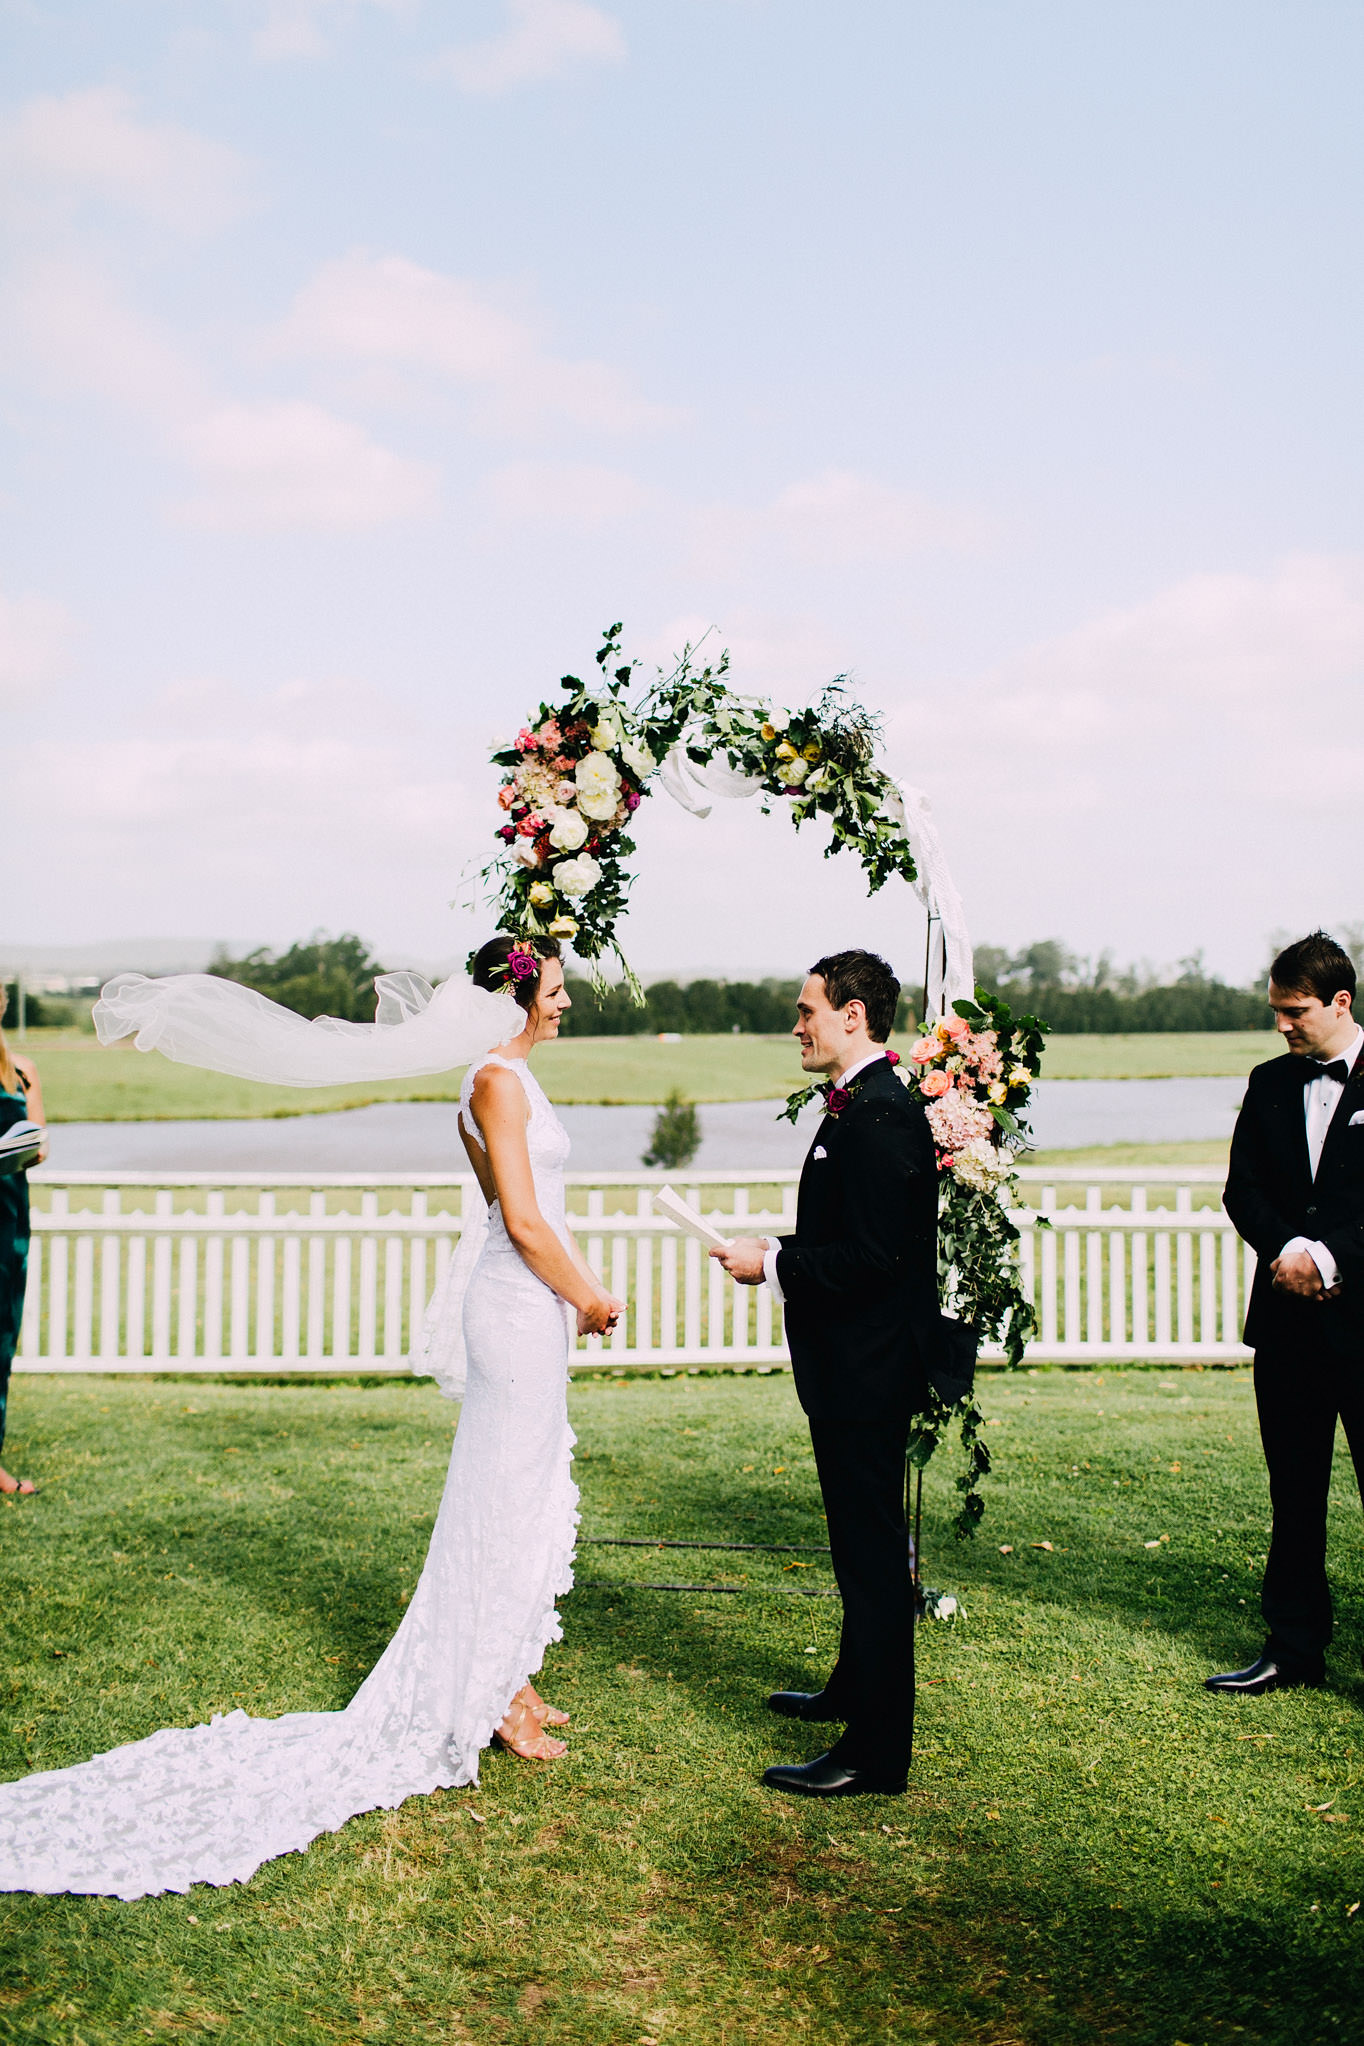 TocalHomestead_WeddingPhotography_LaurenAnnePhotography-1066.jpg